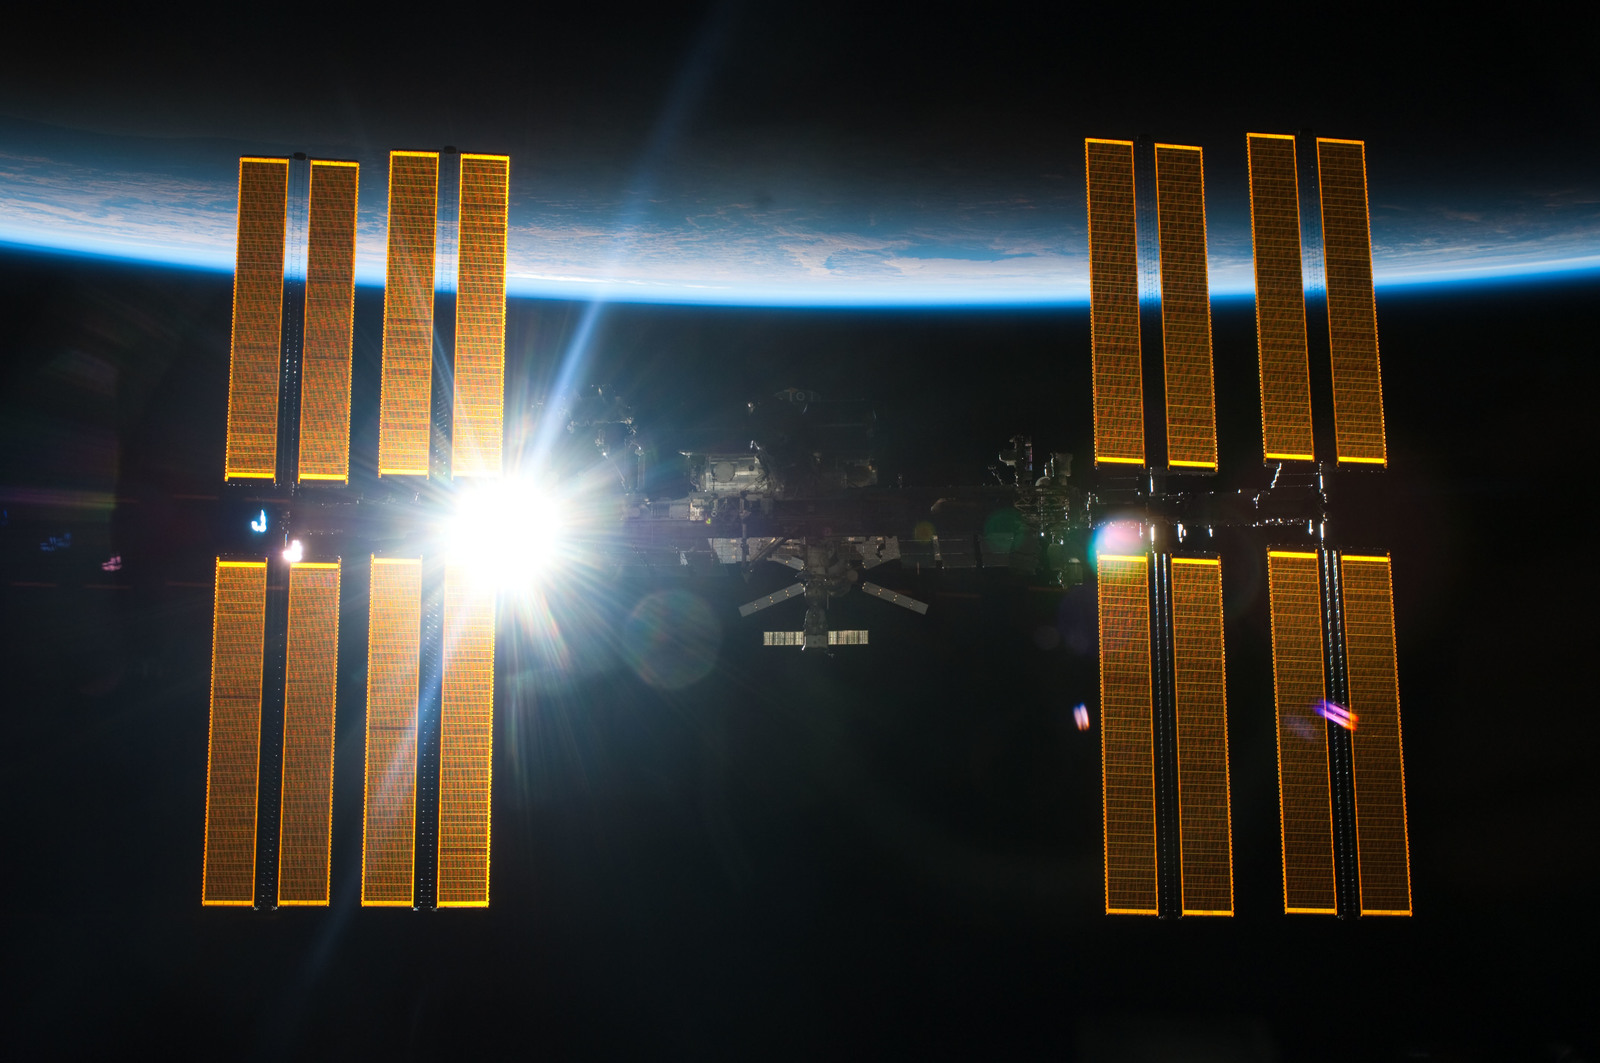 S134E011414 - STS-134 - Overall view of ISS